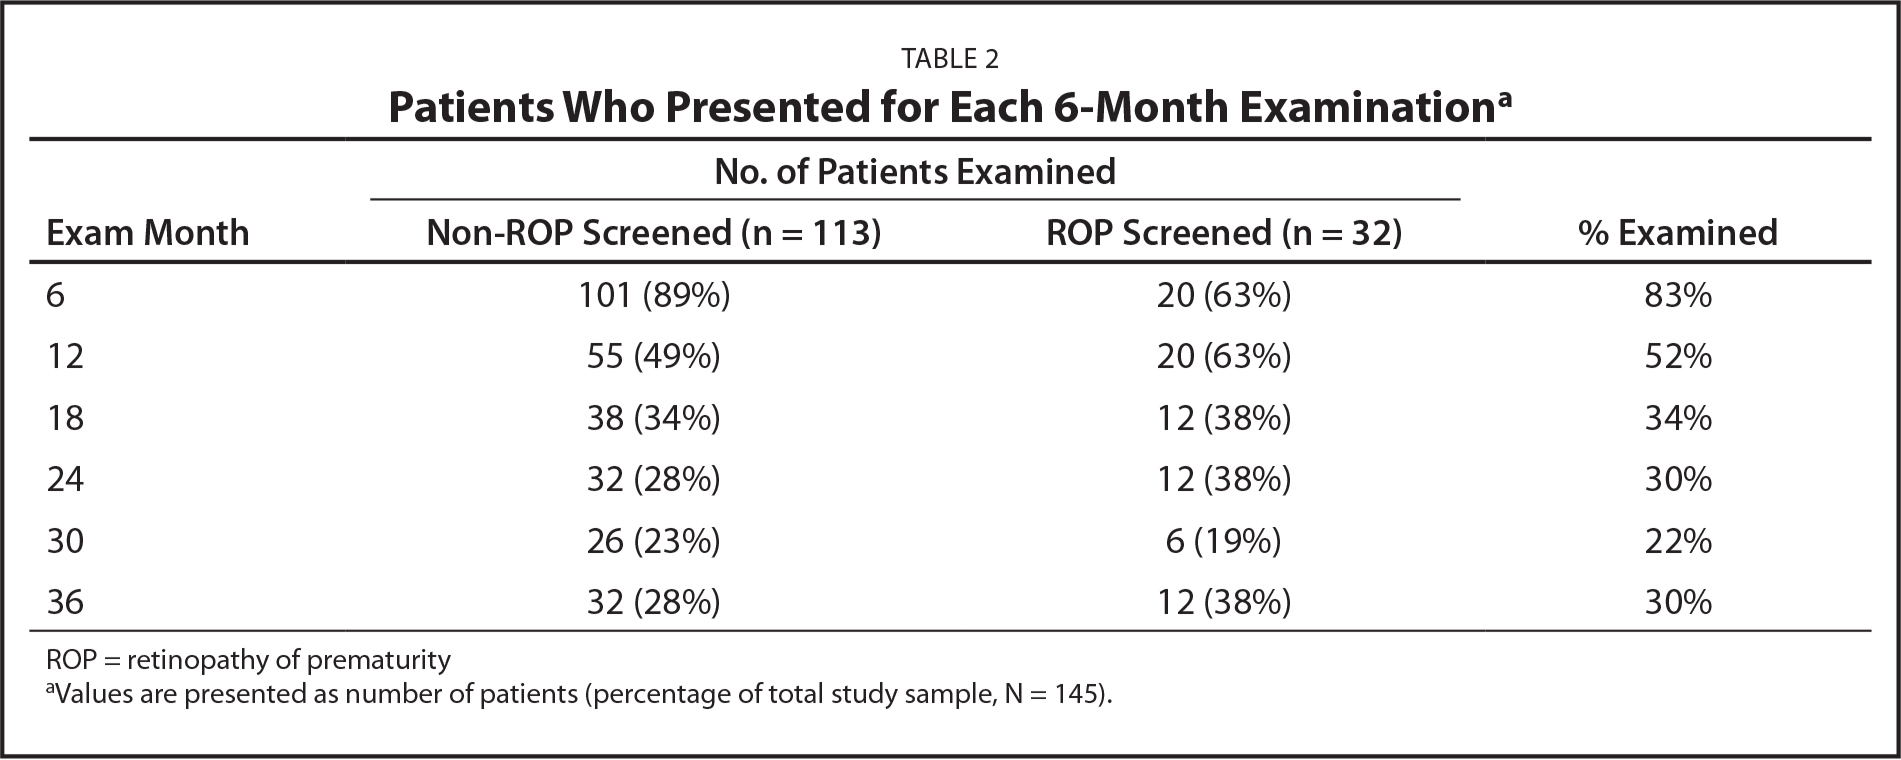 Patients Who Presented for Each 6-Month Examinationa